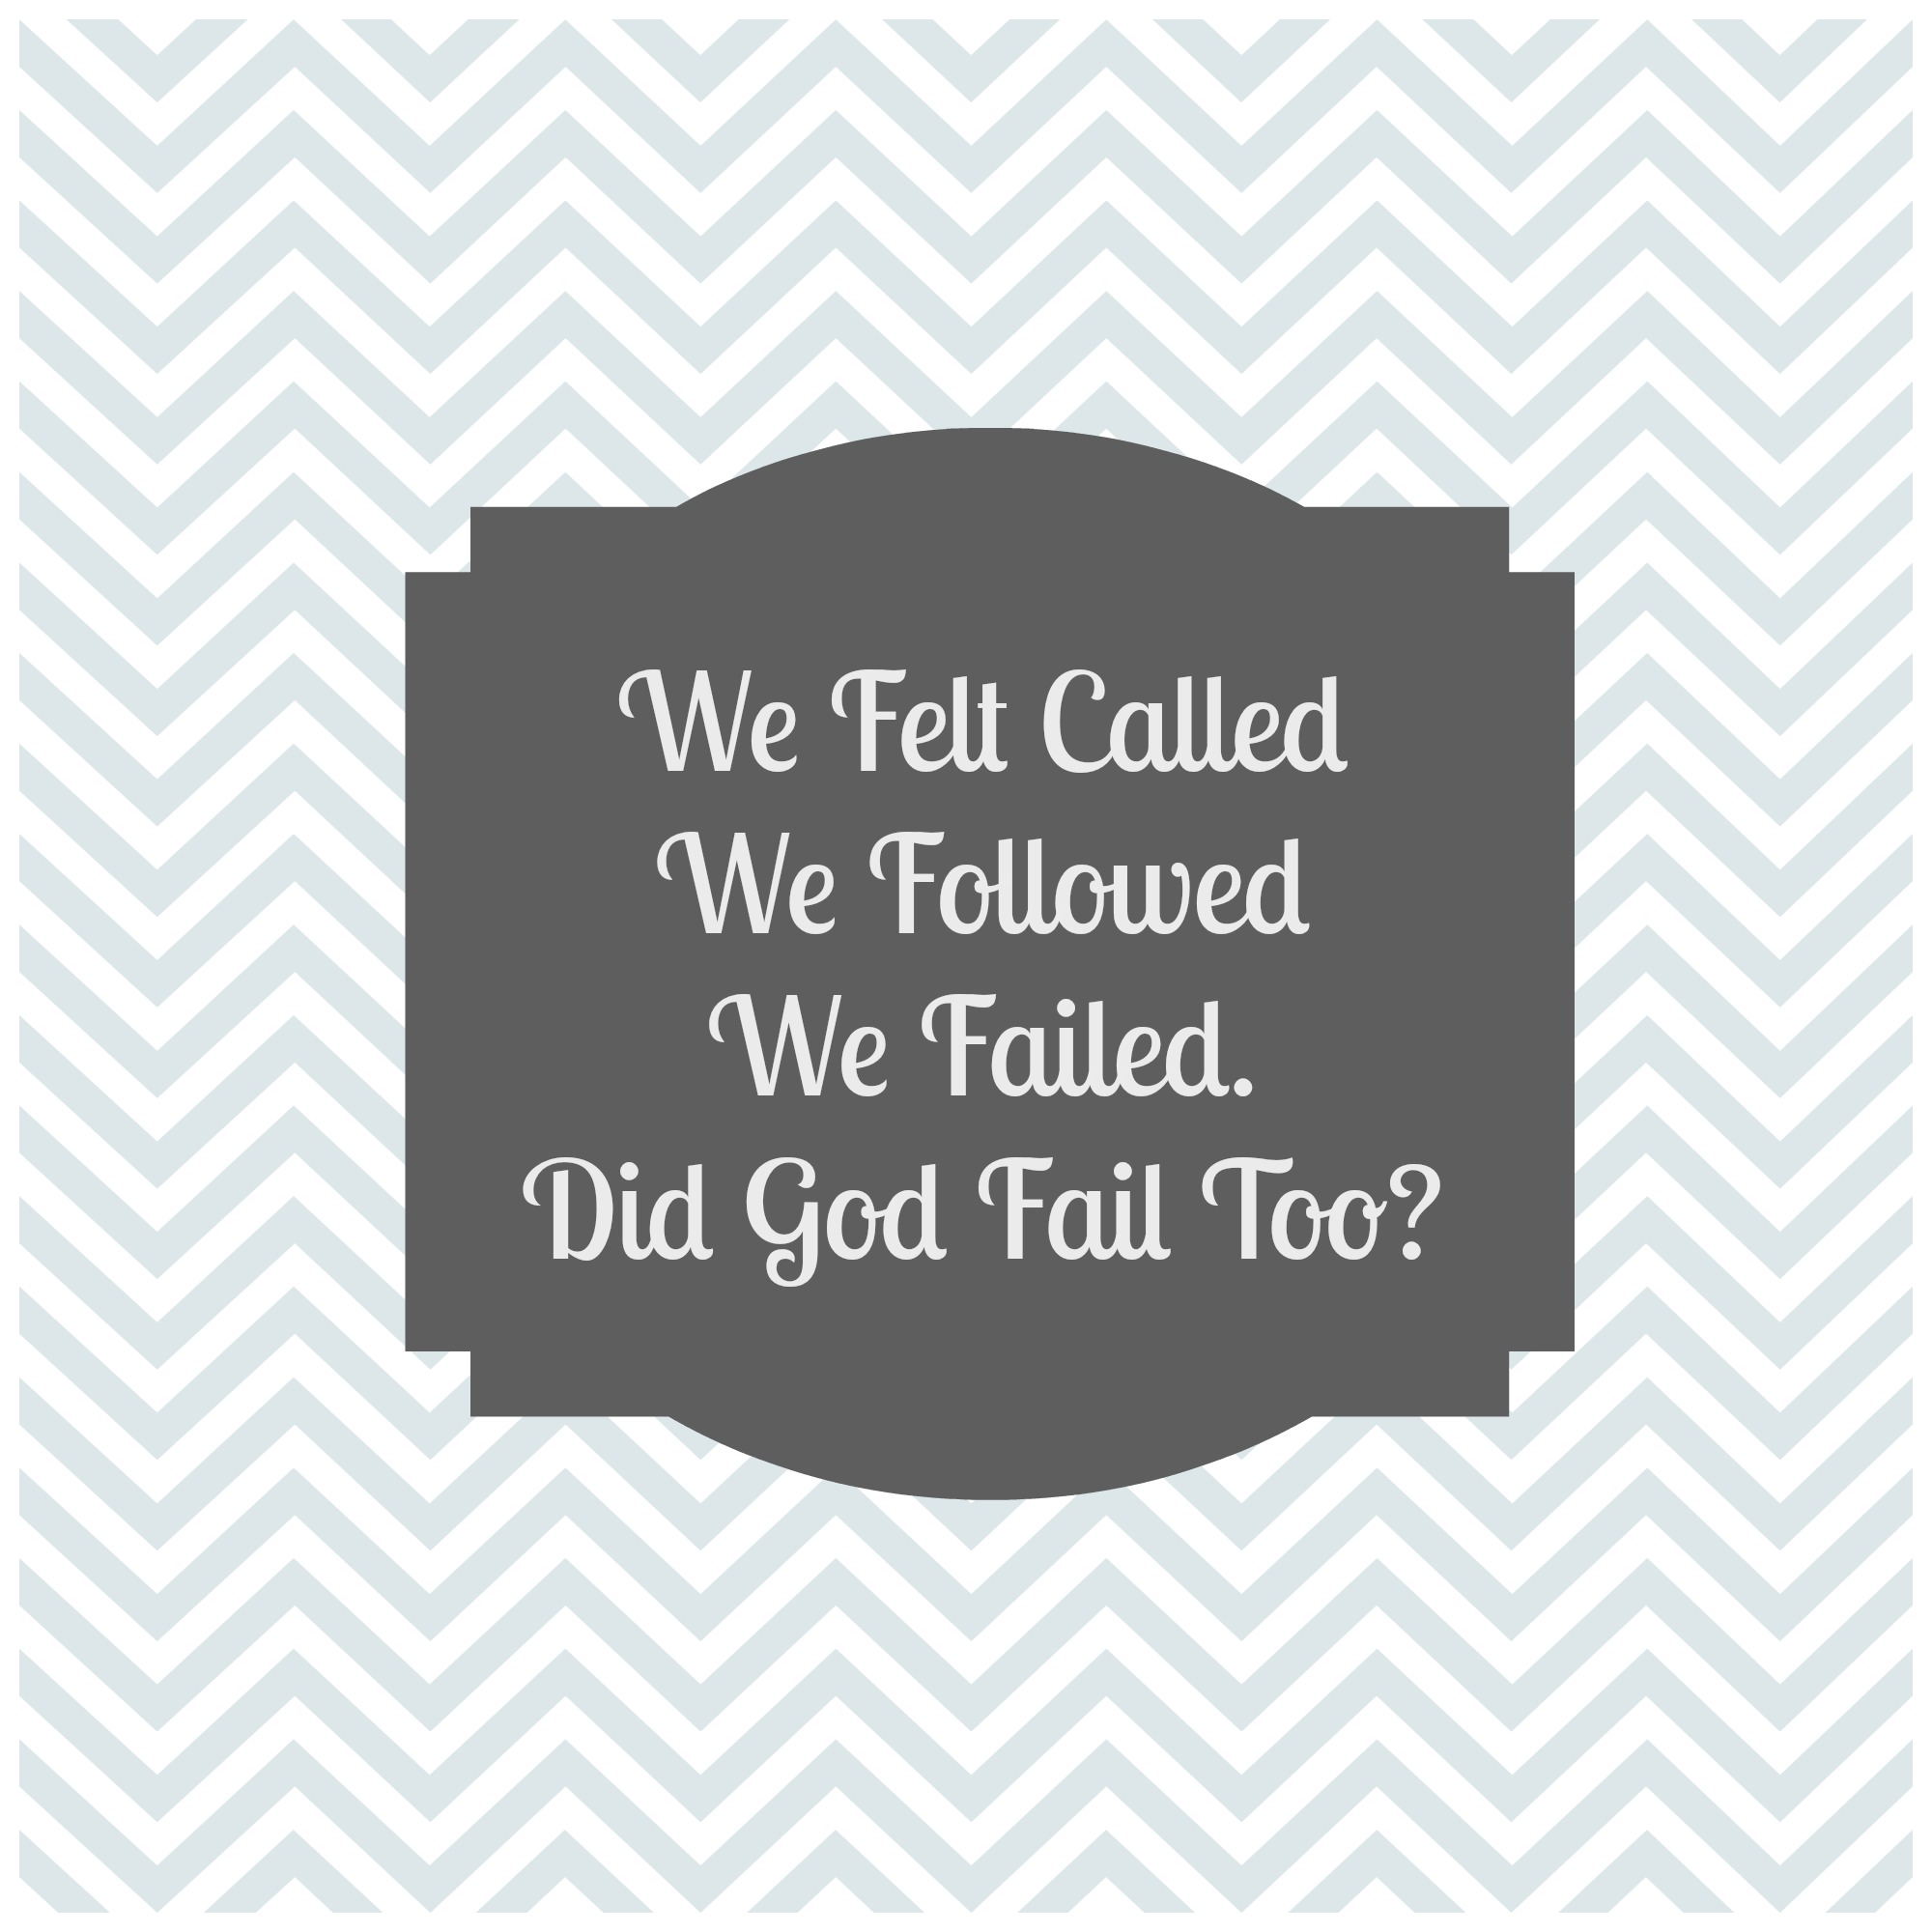 We Felt Called, We Followed, We Failed. Did God Fail Too